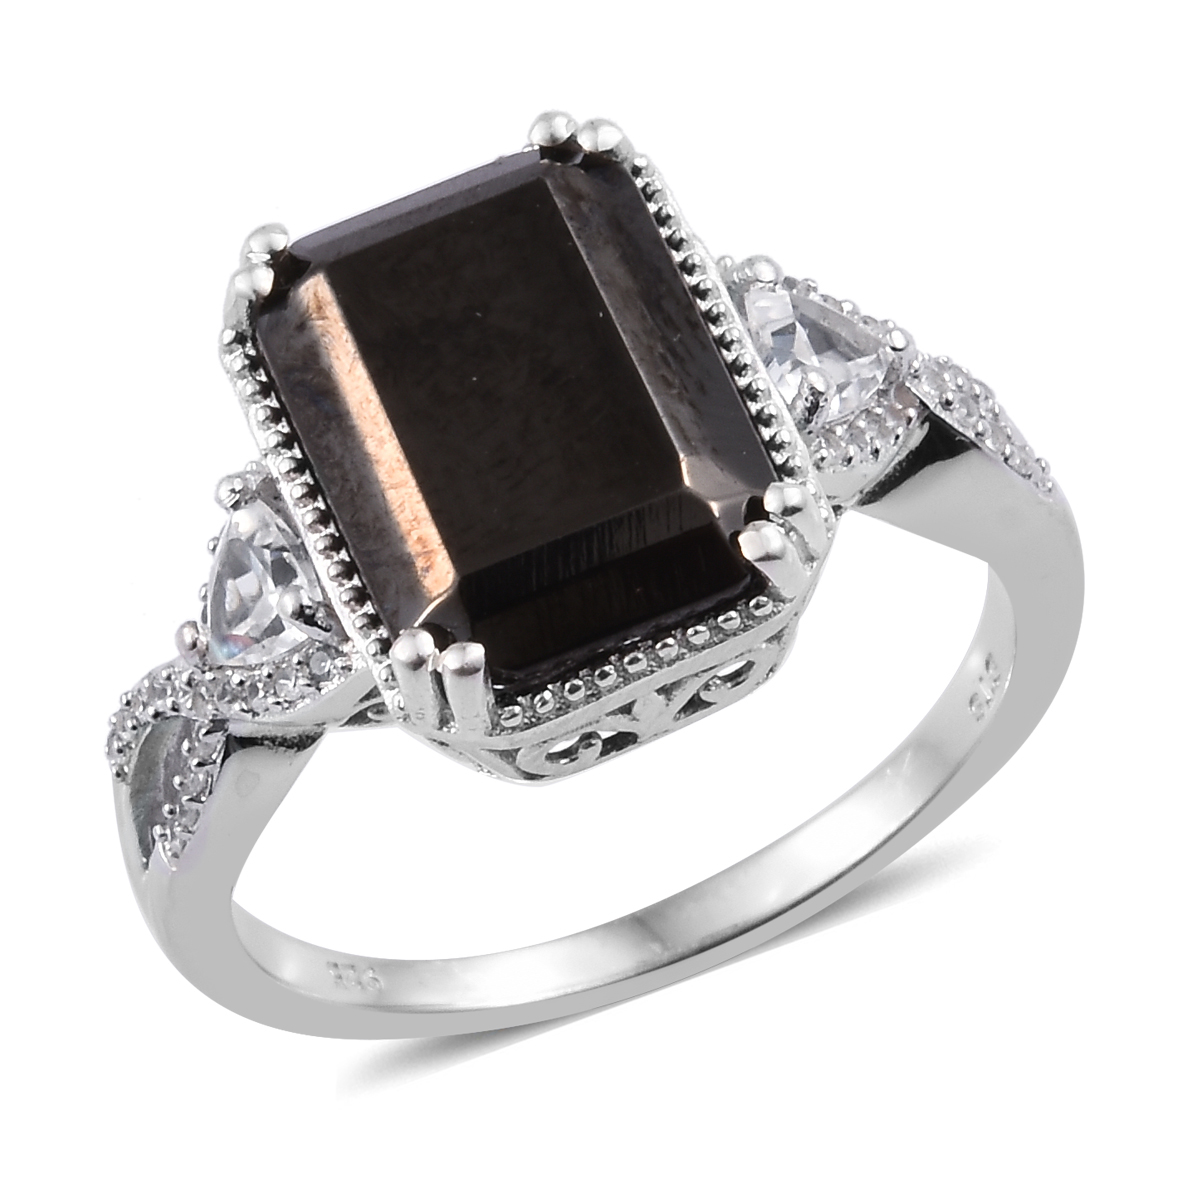 Silver Shungite, Zircon Ring in Platinum Over Sterling Silver (Size 8.0) 5.77 ctw